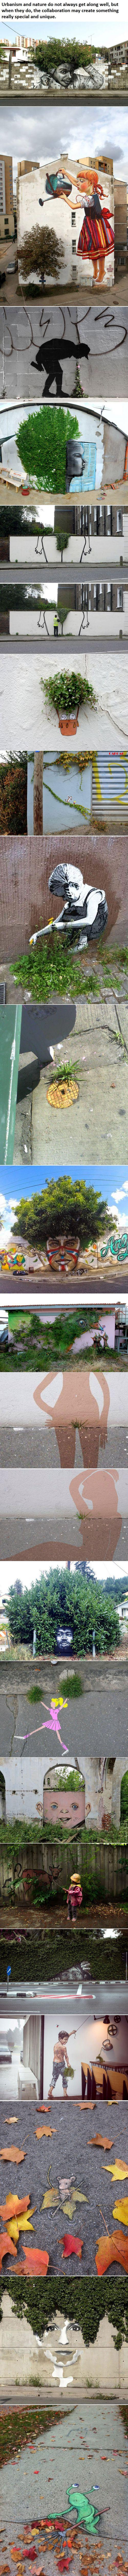 This Is What Happens When Street Art Cleverly Interacts With Nature... -   Misc